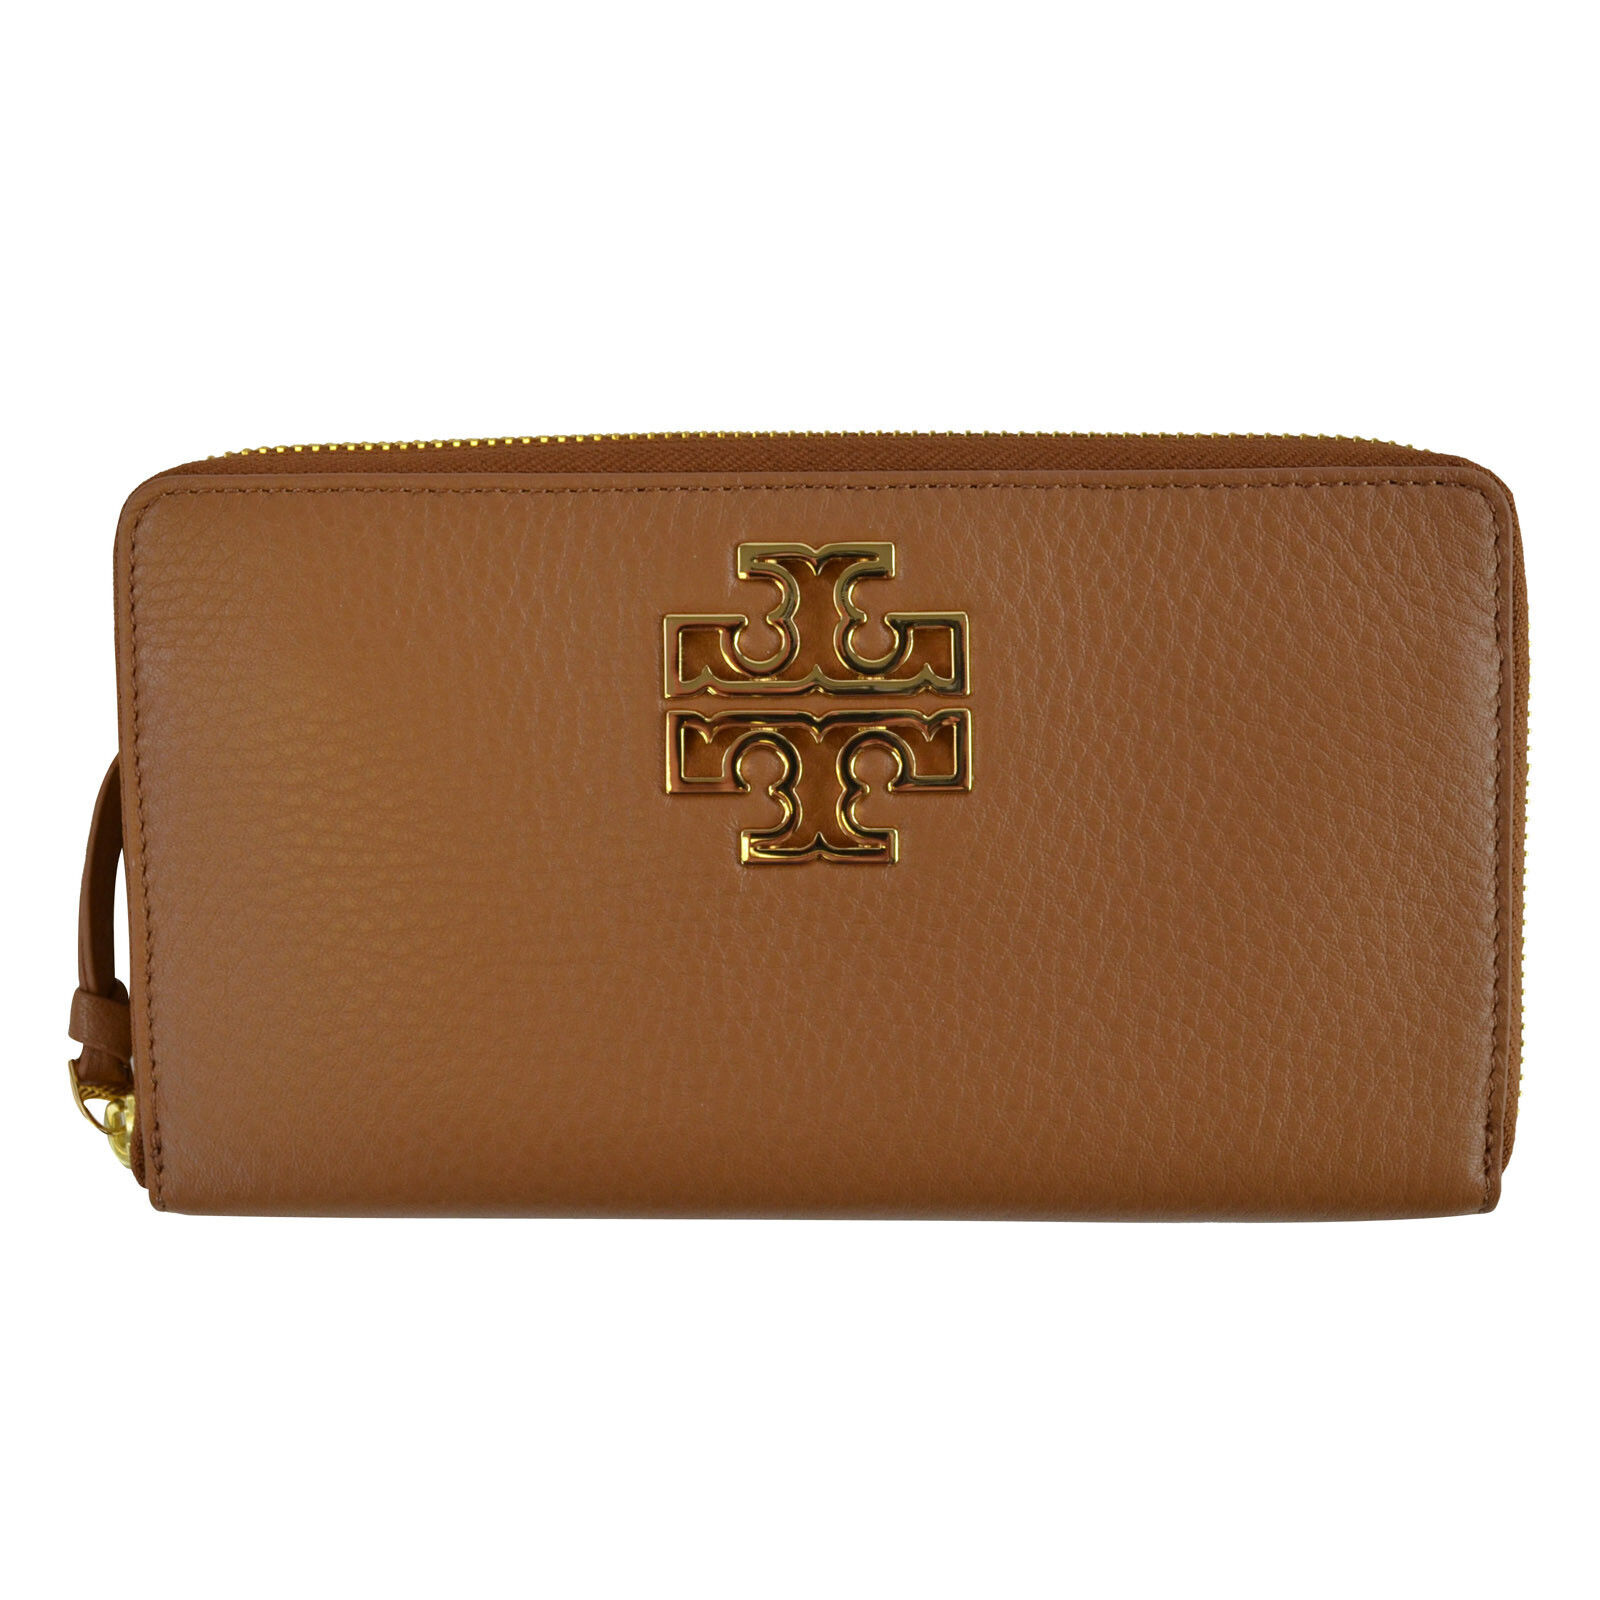 753afb77f037f Tory burch britten zip continental wallet bark leather clutch bag ebay jpg  1600x1600 Tory burch blue